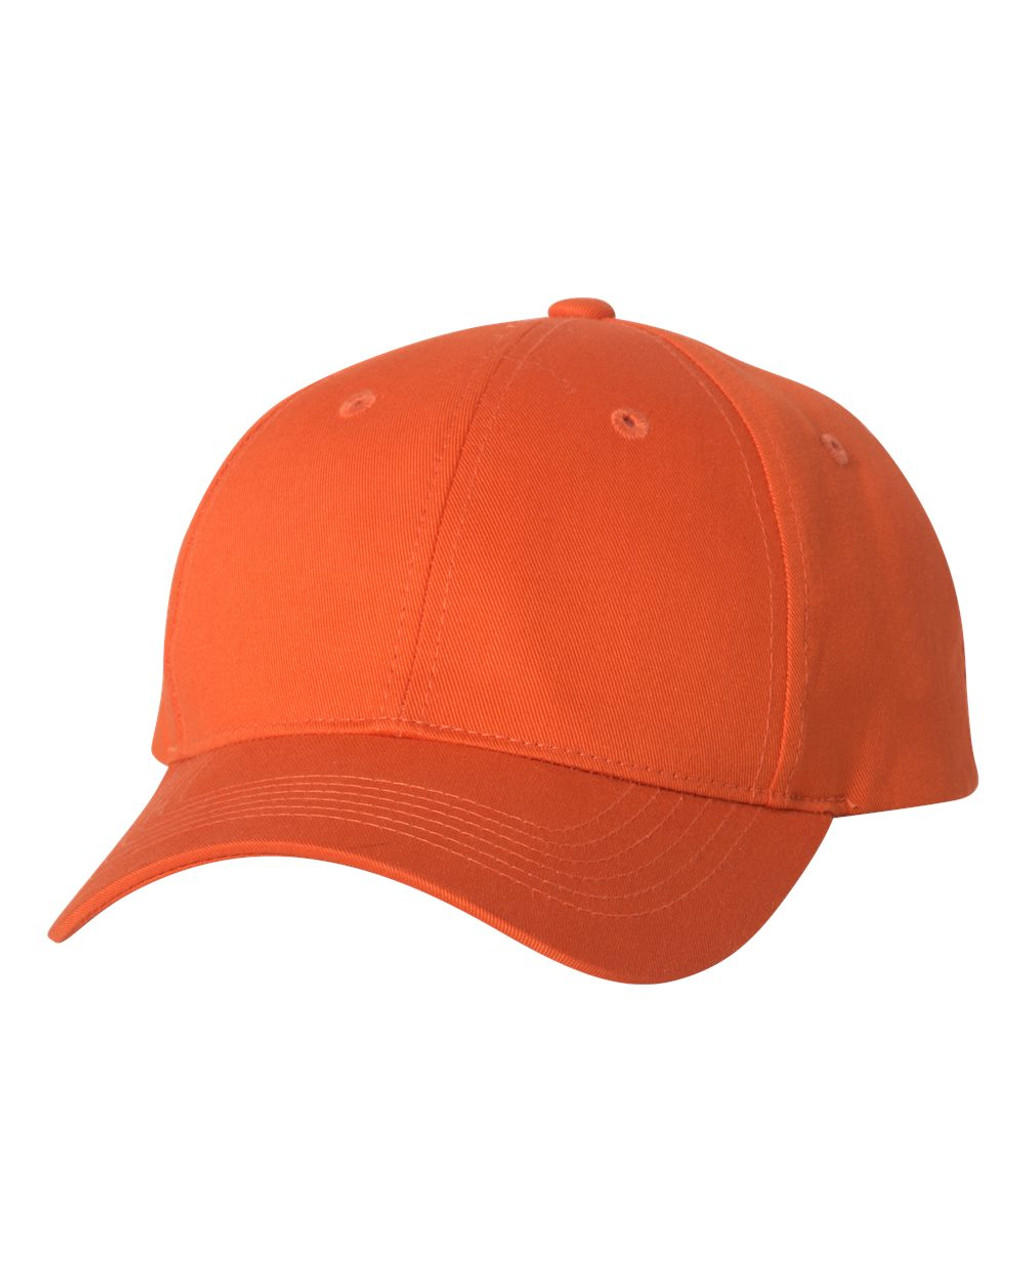 2260 - Twill cap with Velcro Closure by Sportsman in Orange